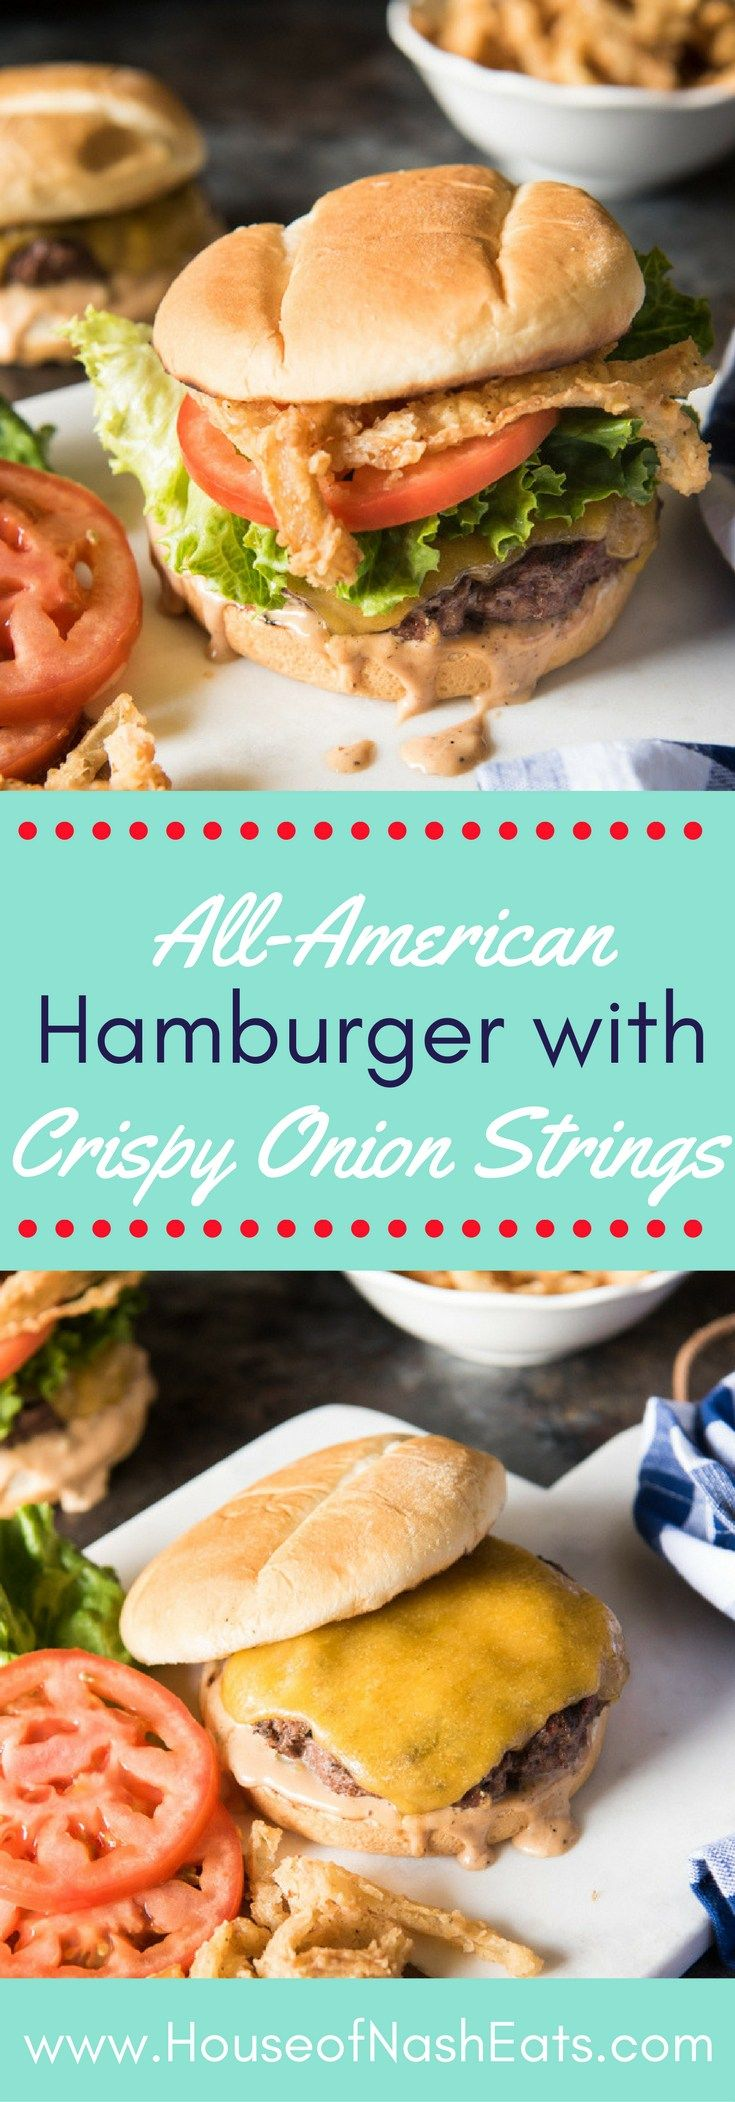 This All-American Hamburger with Crispy Onion Strings & Burger Sauce is incredibly juicy, loaded with delicious flavors, and is just the thing to kick off the summer grilling season!  Perfect for Memorial Day, Father's Day, and the Fourth of July!